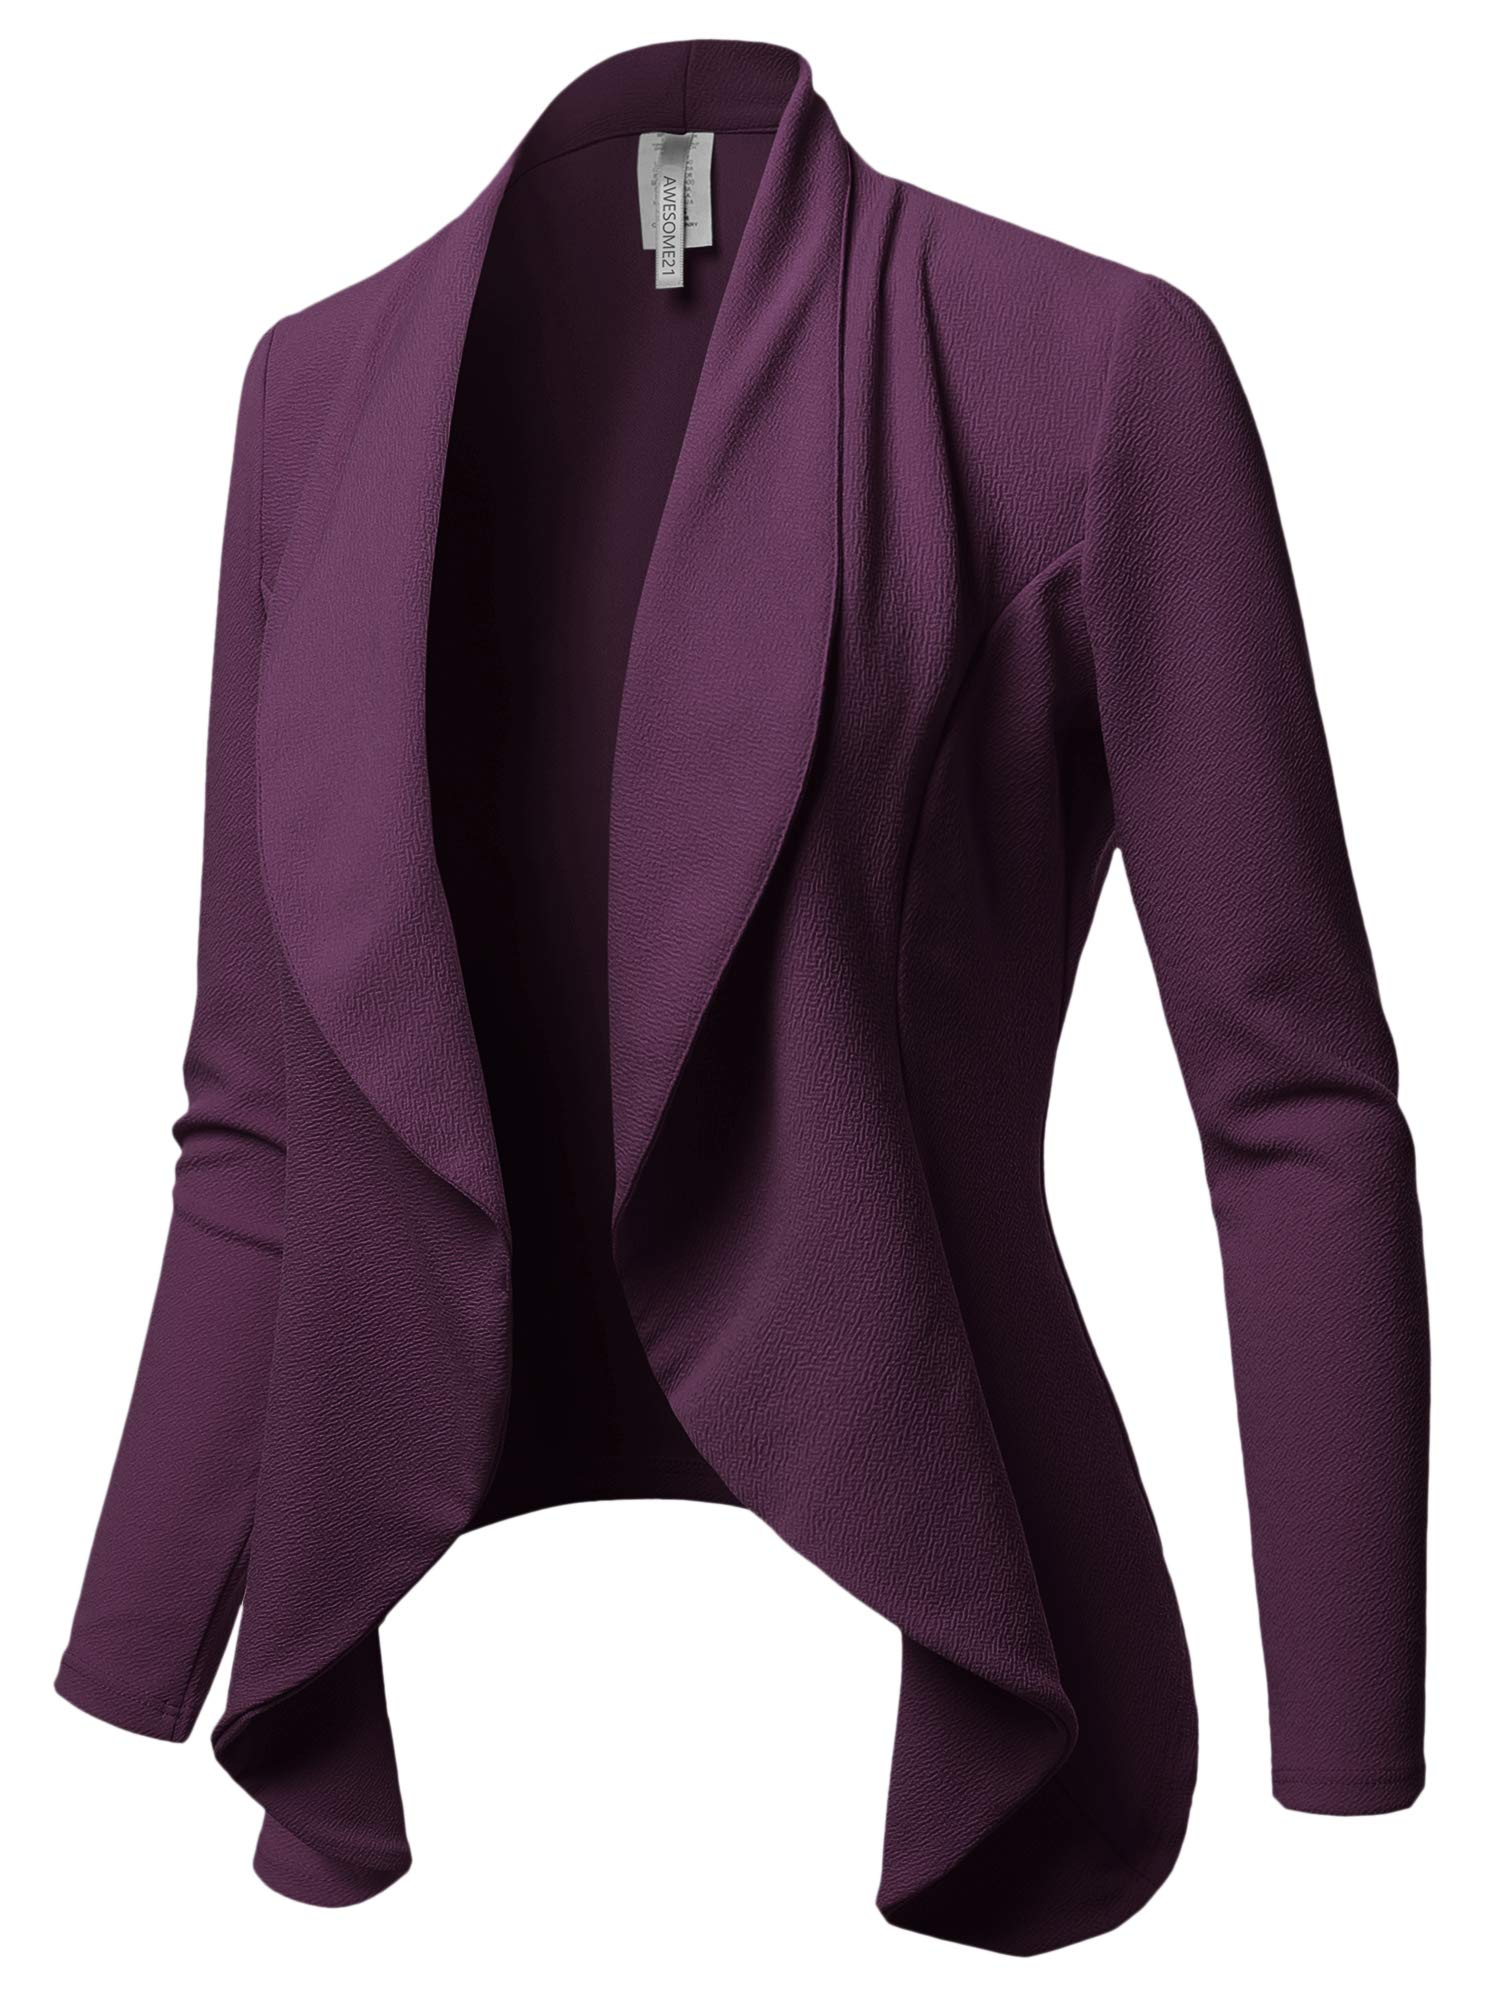 Awesome21 Solid Formal Office Style Open Front Blazer - Made in USA Plum XL